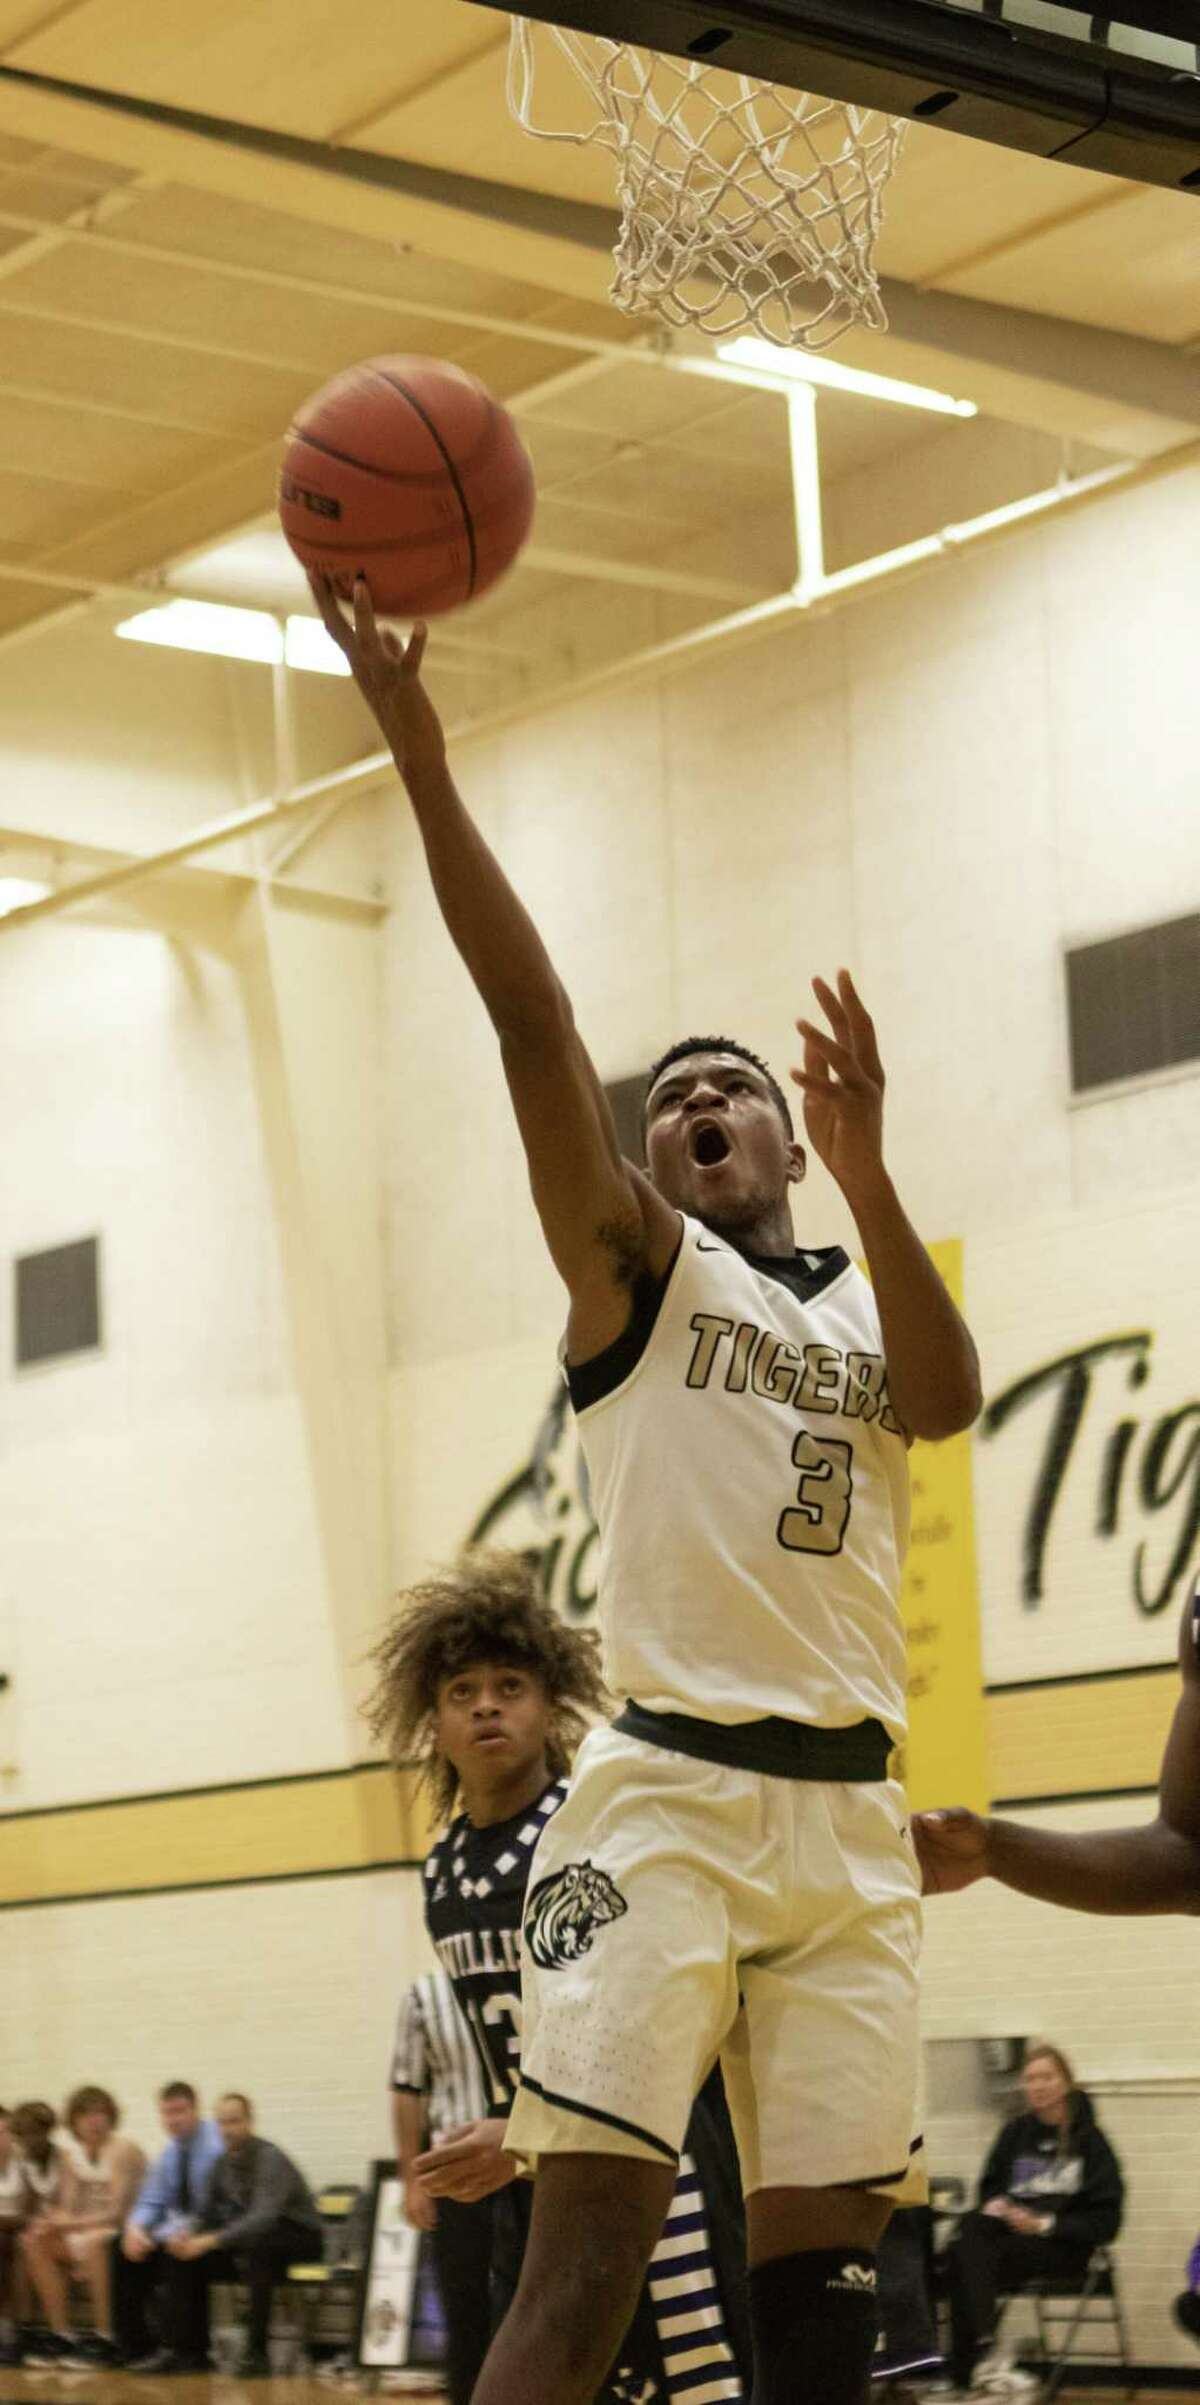 Conroe junior Michael Phoenix (3) goes up to score during a non-district basketball game Tuesday, Nov. 13, 2018 at The Pit in Conroe.